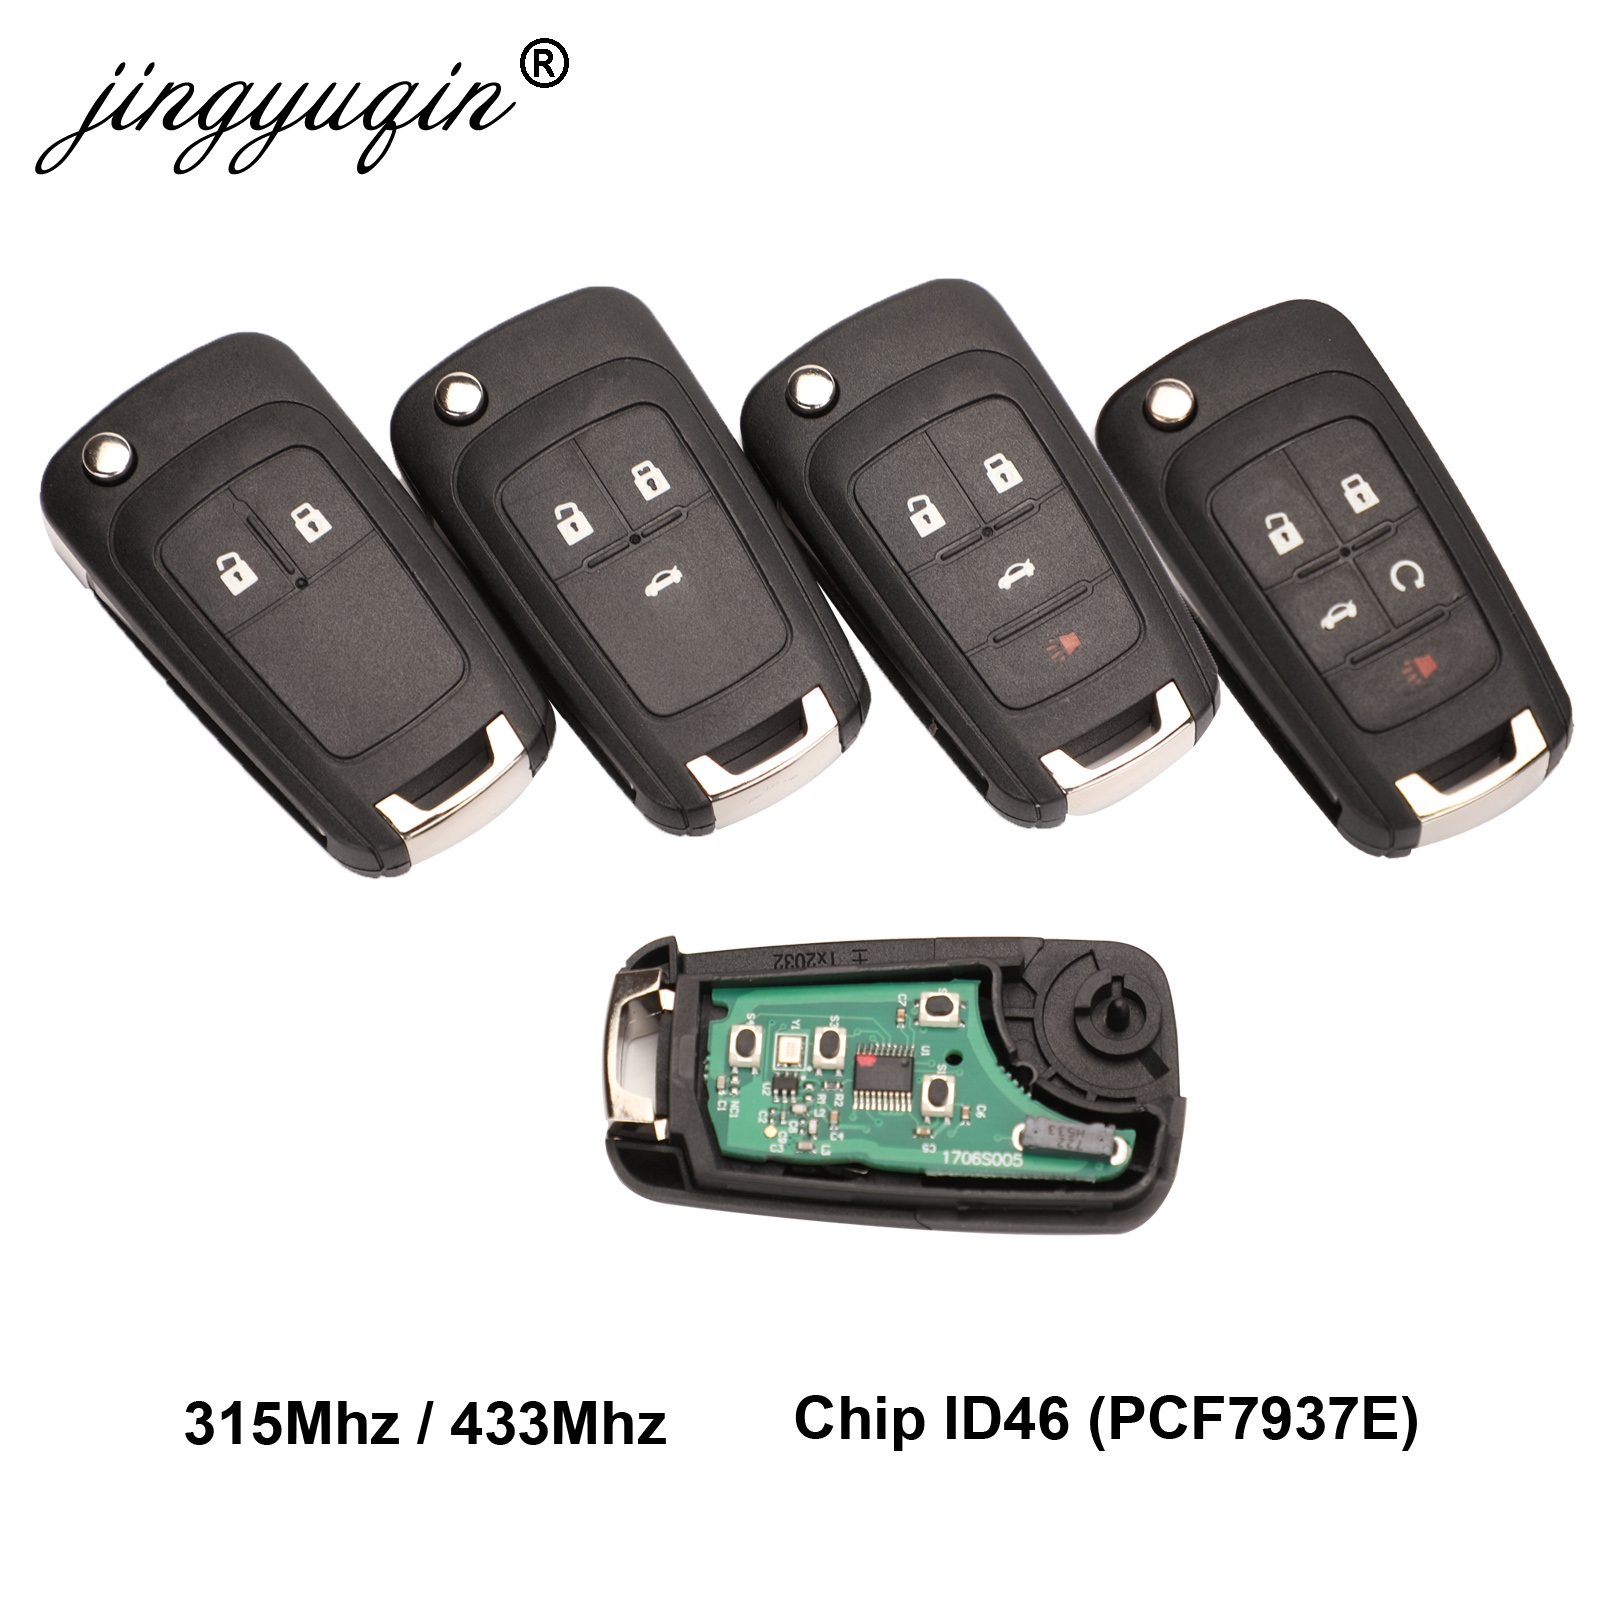 jingyuqin 2/3/4/5 Buttons Car Remote Key DIY for OPEL/VAUXHALL Astra J Corsa E Insignia Zafira C 2009 2016 315 / 433MHz PCF7937E-in Car Key from Automobiles & Motorcycles